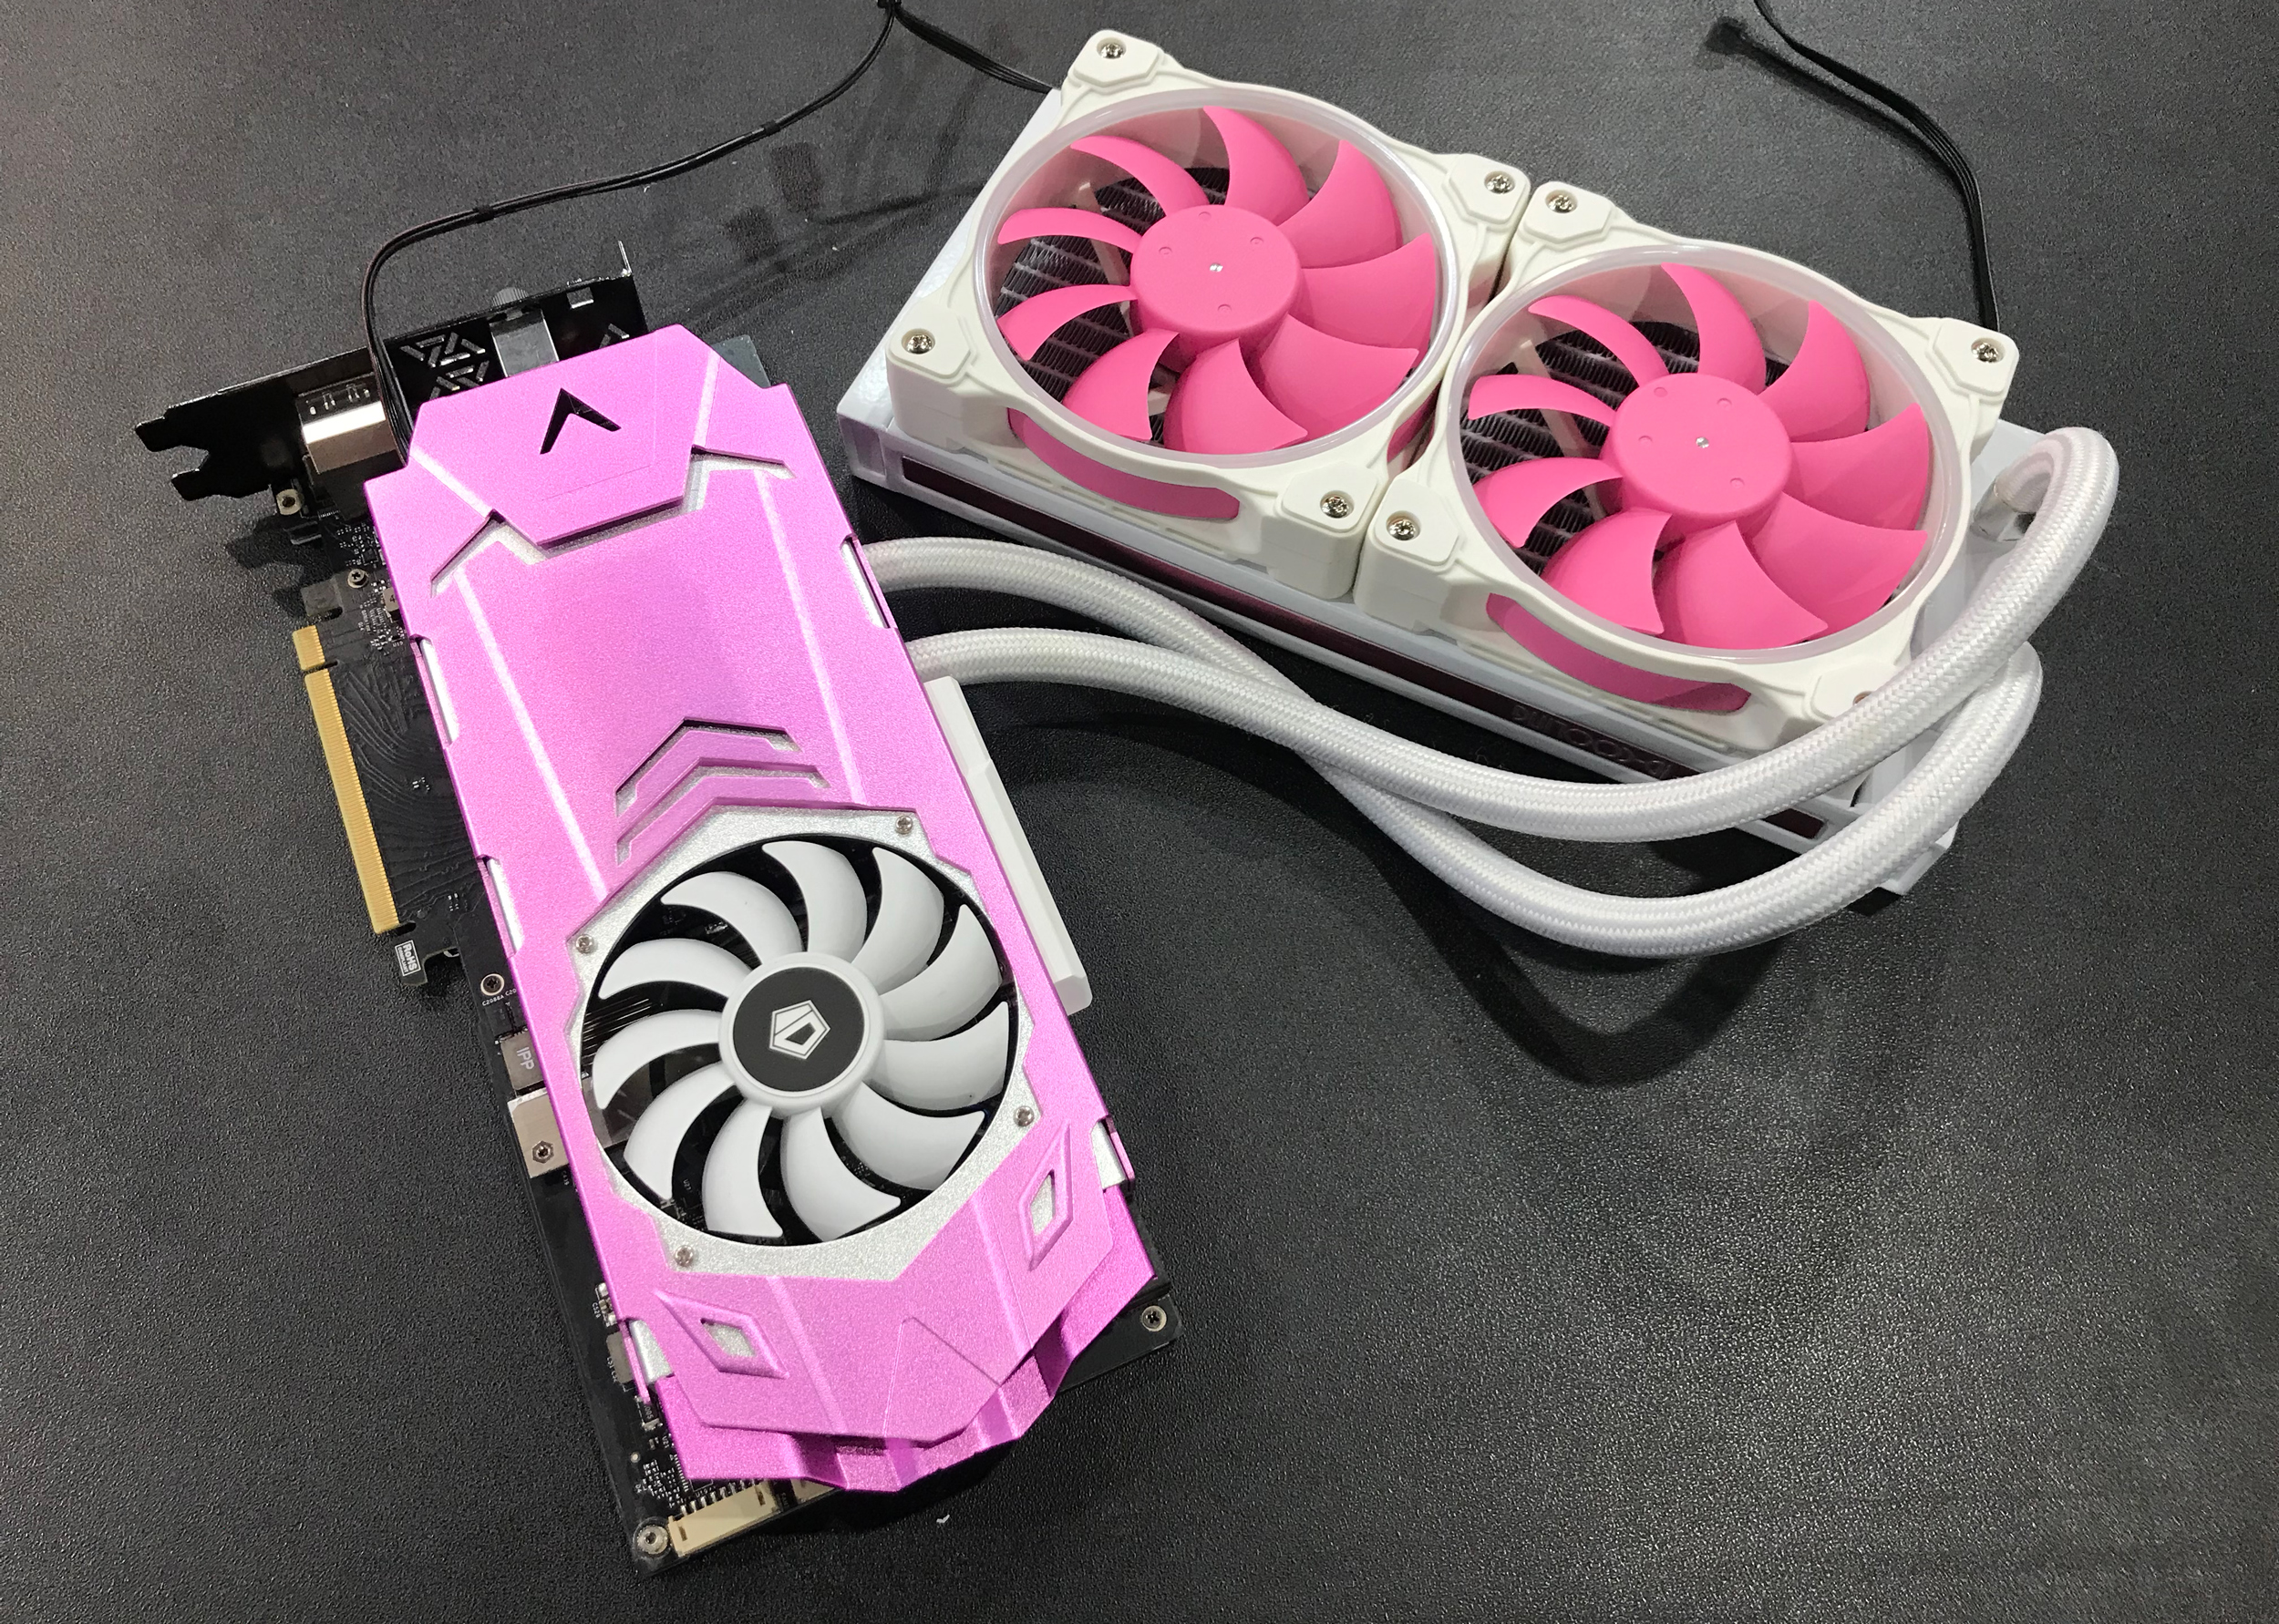 Spotted at Computex: A White and Pink AIO LCS from ID Cooling